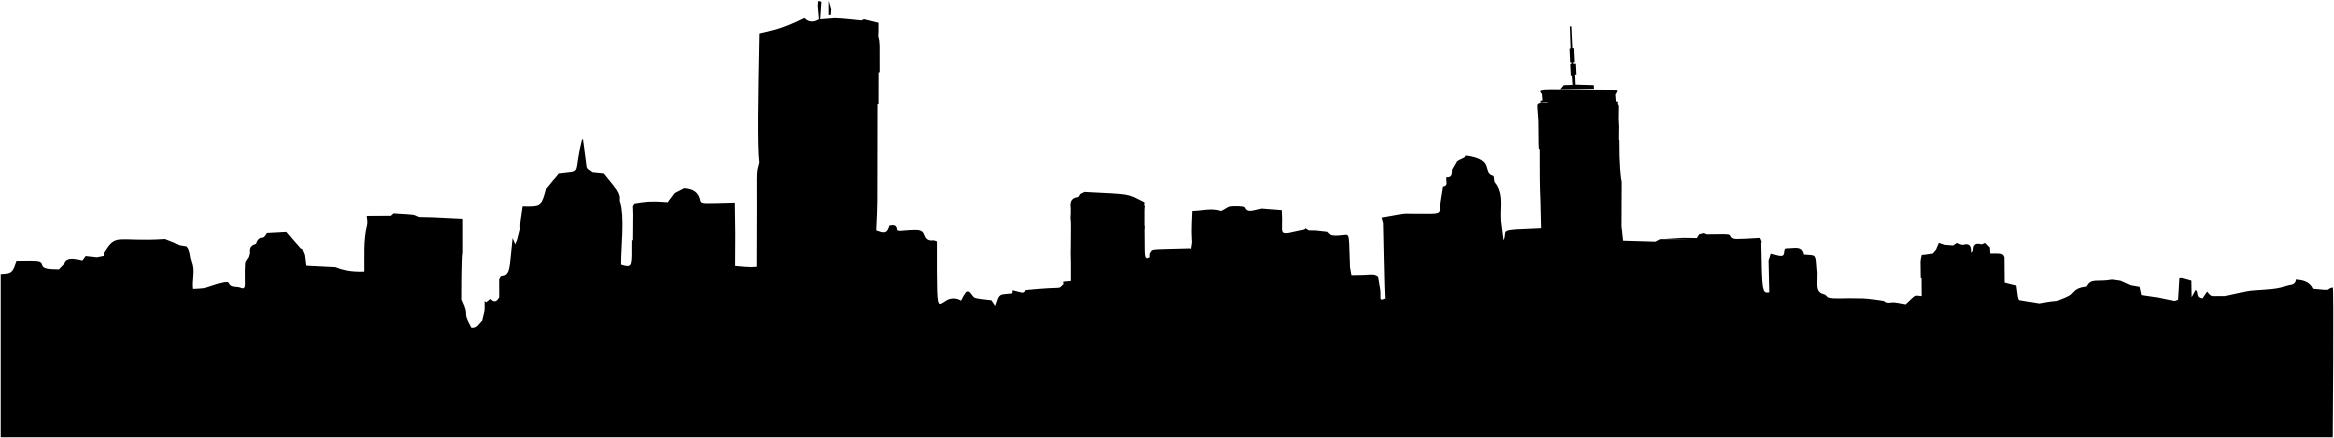 2334x438 Generic Cityscape Silhouette 4 Icons Png